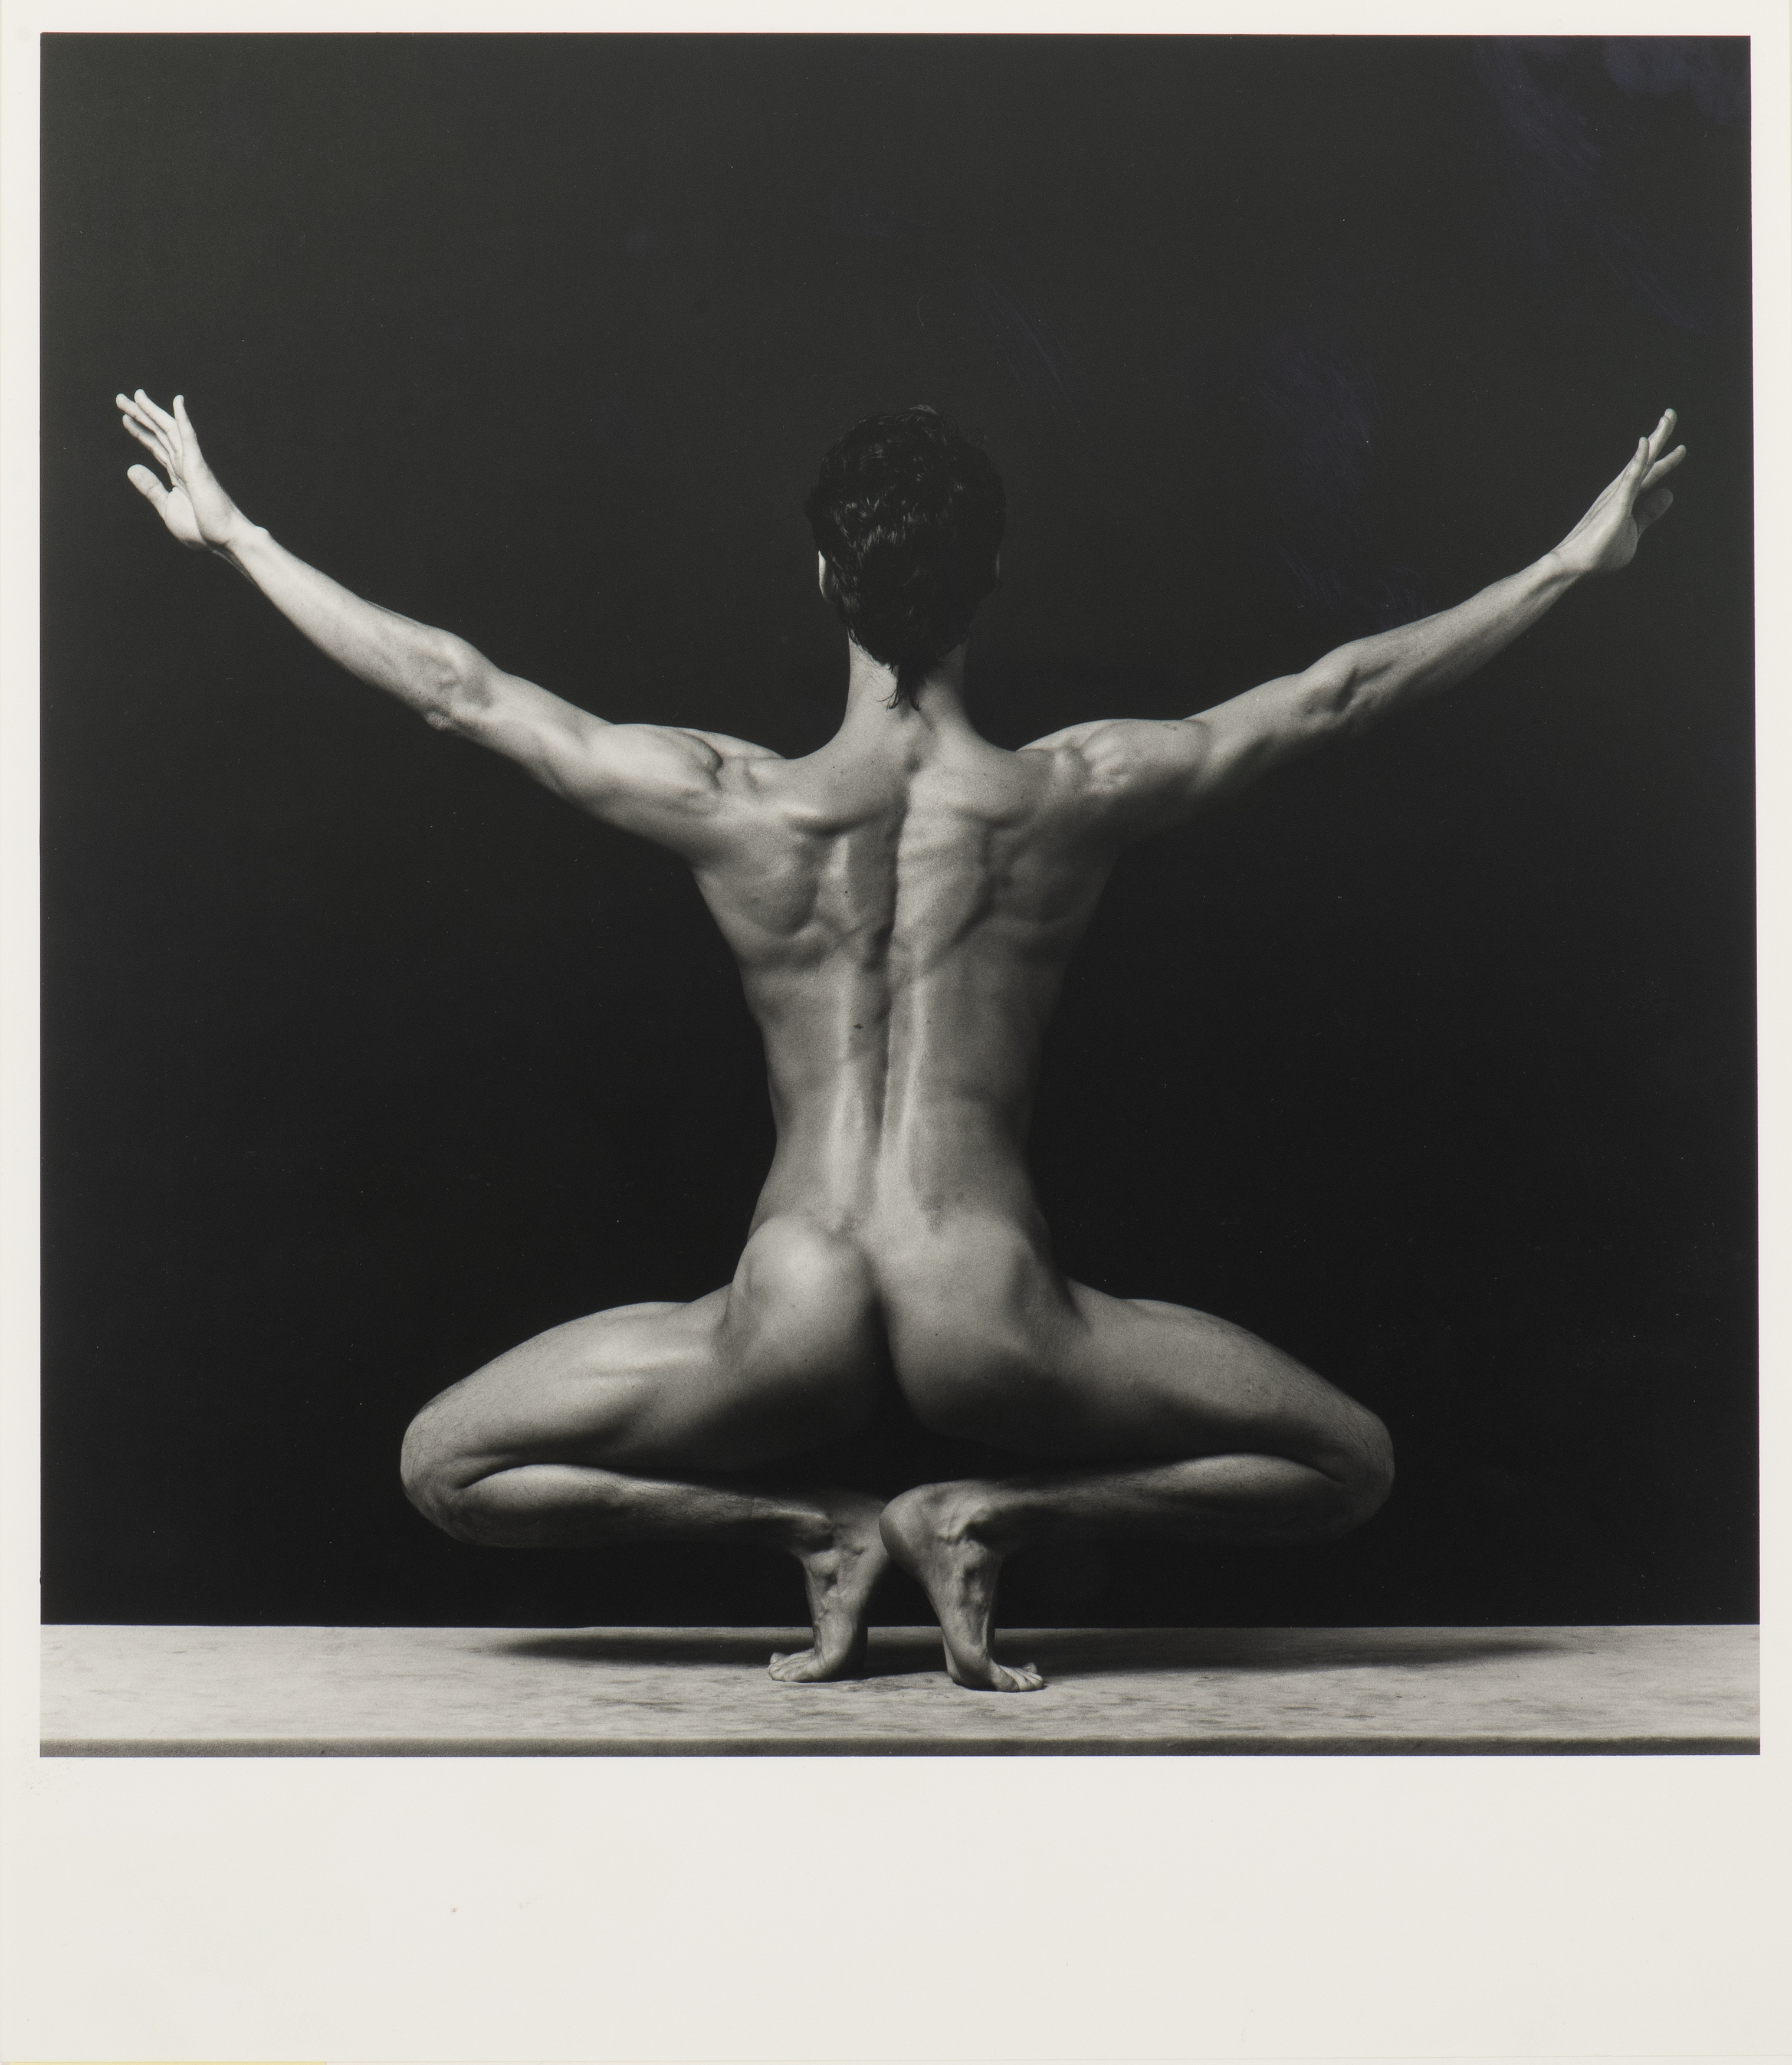 Hans van Manen (b. 1932) Lot 382: Nude dancer by the greatest Dutch choreographer